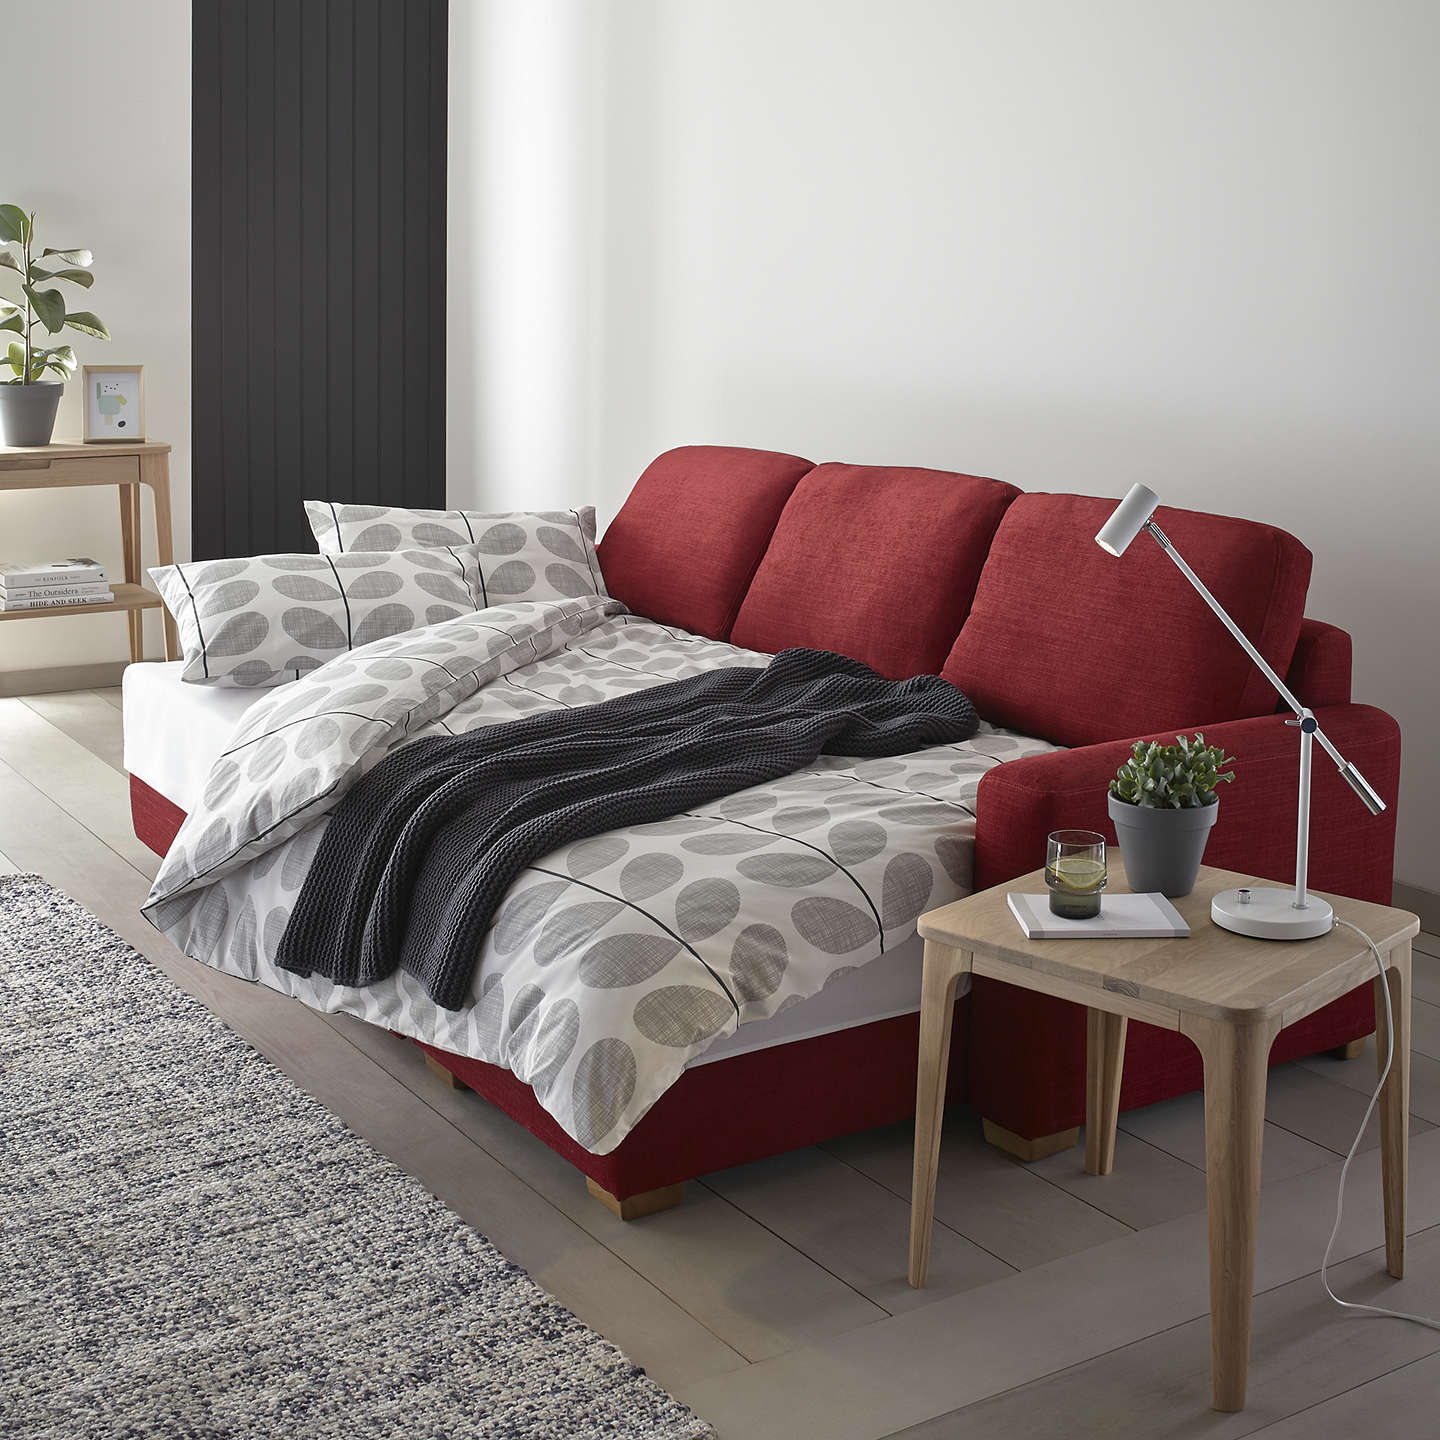 john lewis sacha large sofa bed with foam mattress light leg erin grey at john lewis. Black Bedroom Furniture Sets. Home Design Ideas